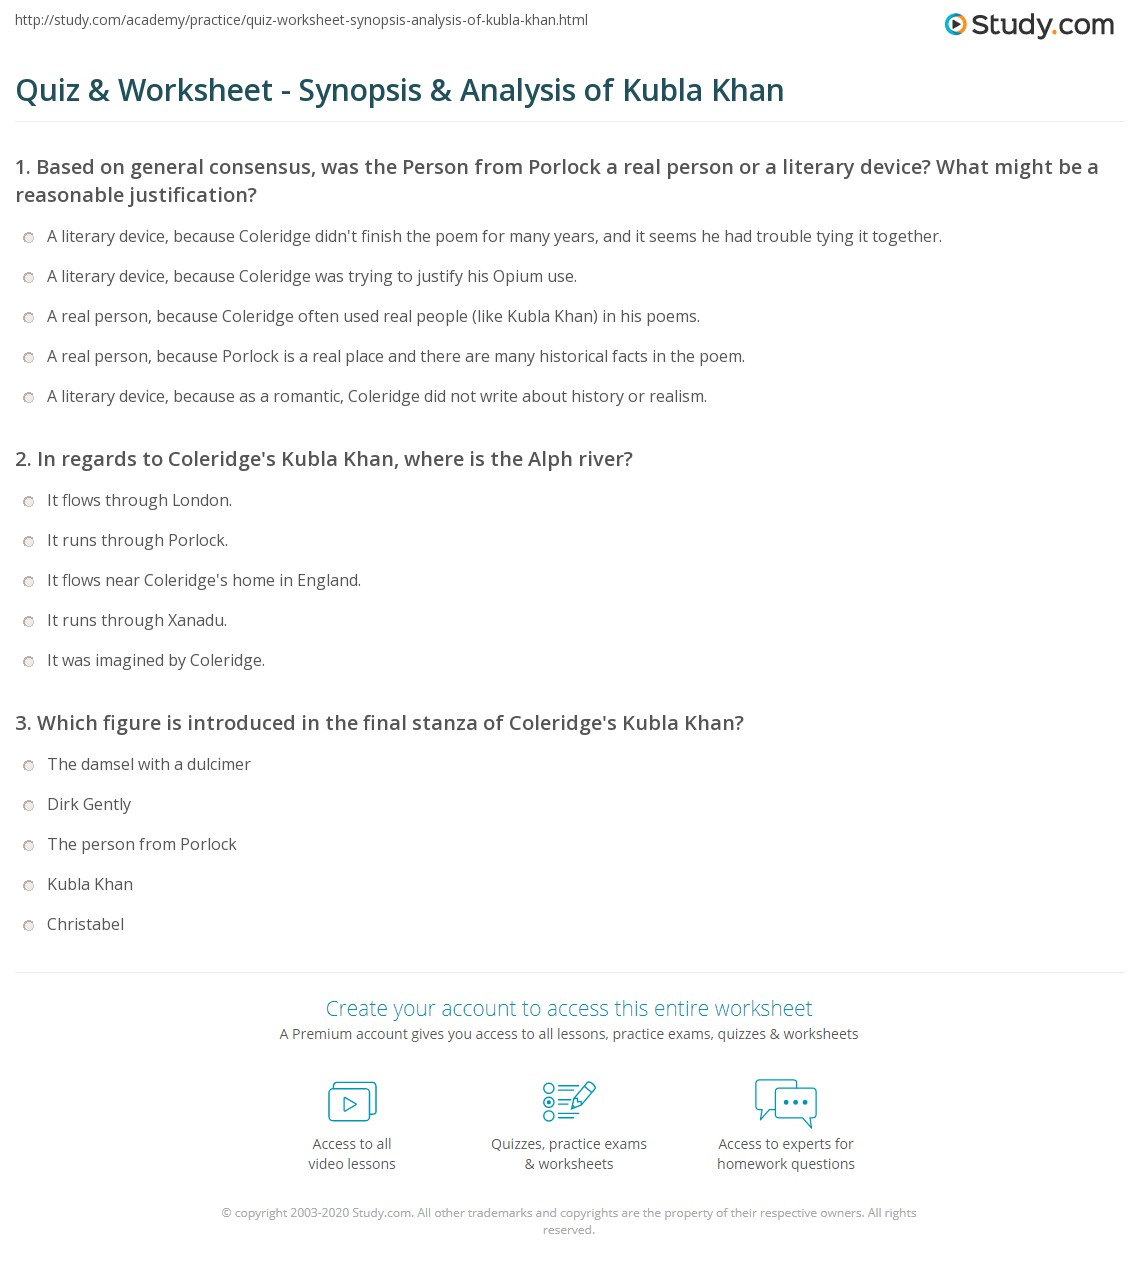 quiz worksheet synopsis analysis of kubla khan com print kubla khan by coleridge analysis and summary worksheet